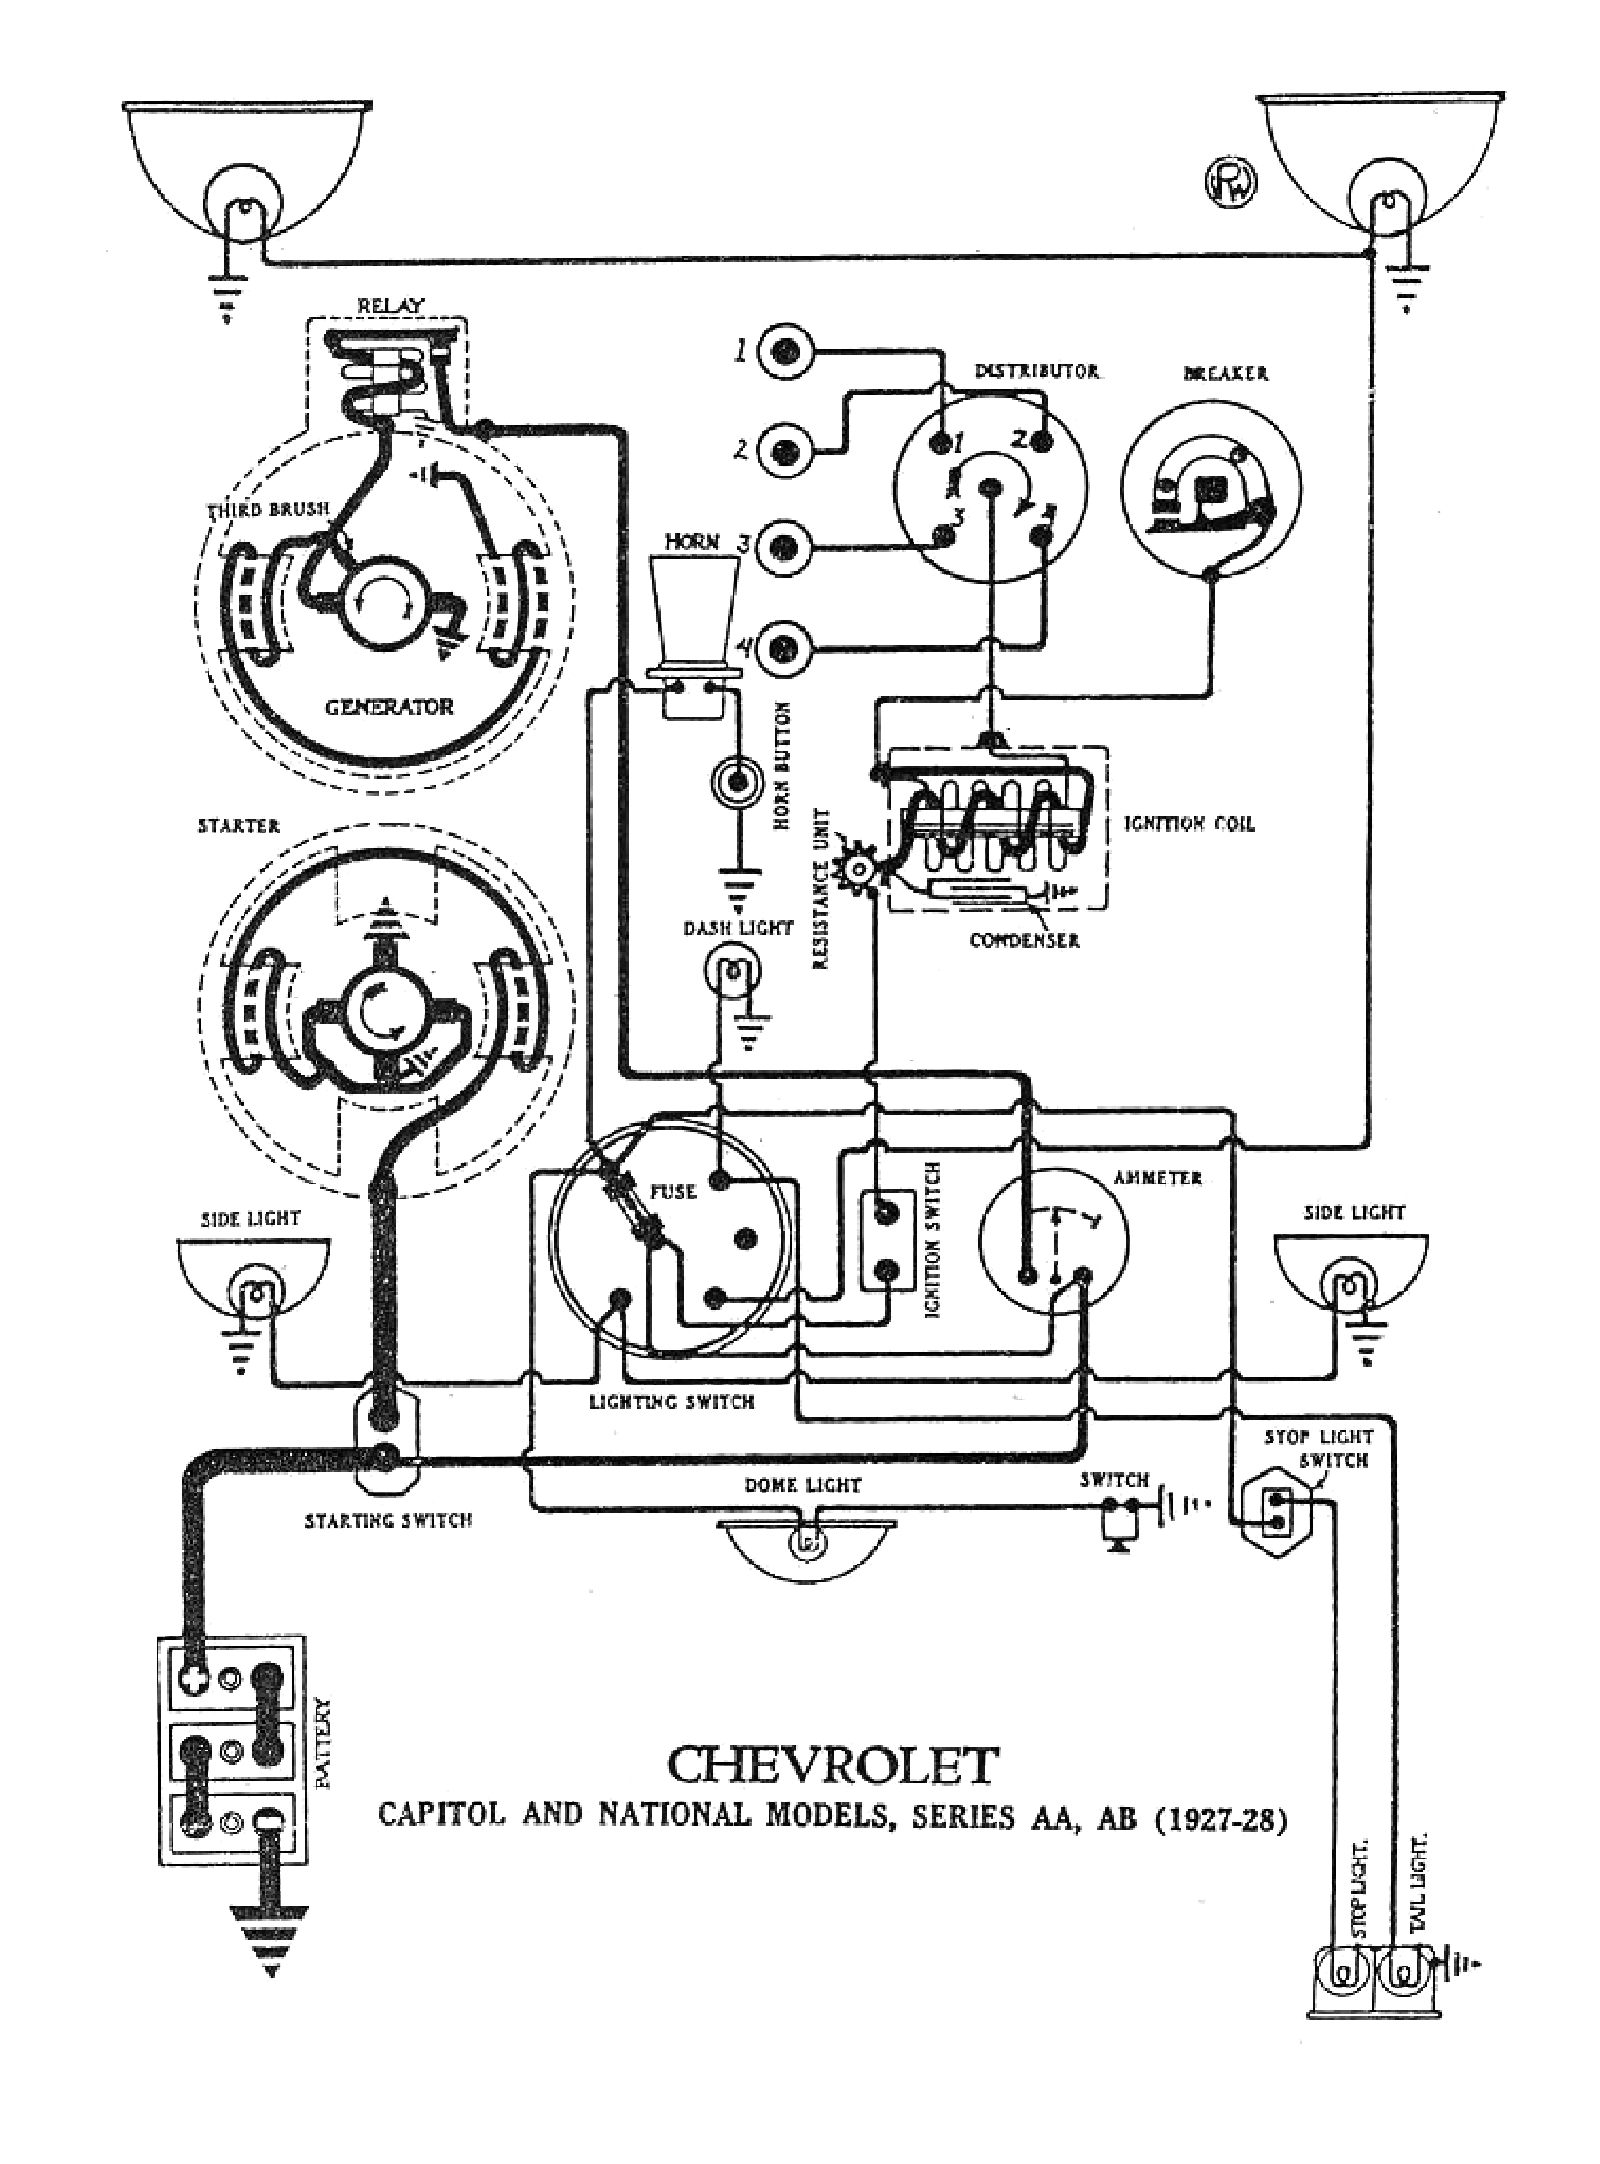 chevy wiring diagrams gm wiring diagrams for dummies at Chevrolet Wiring Diagrams Free Download